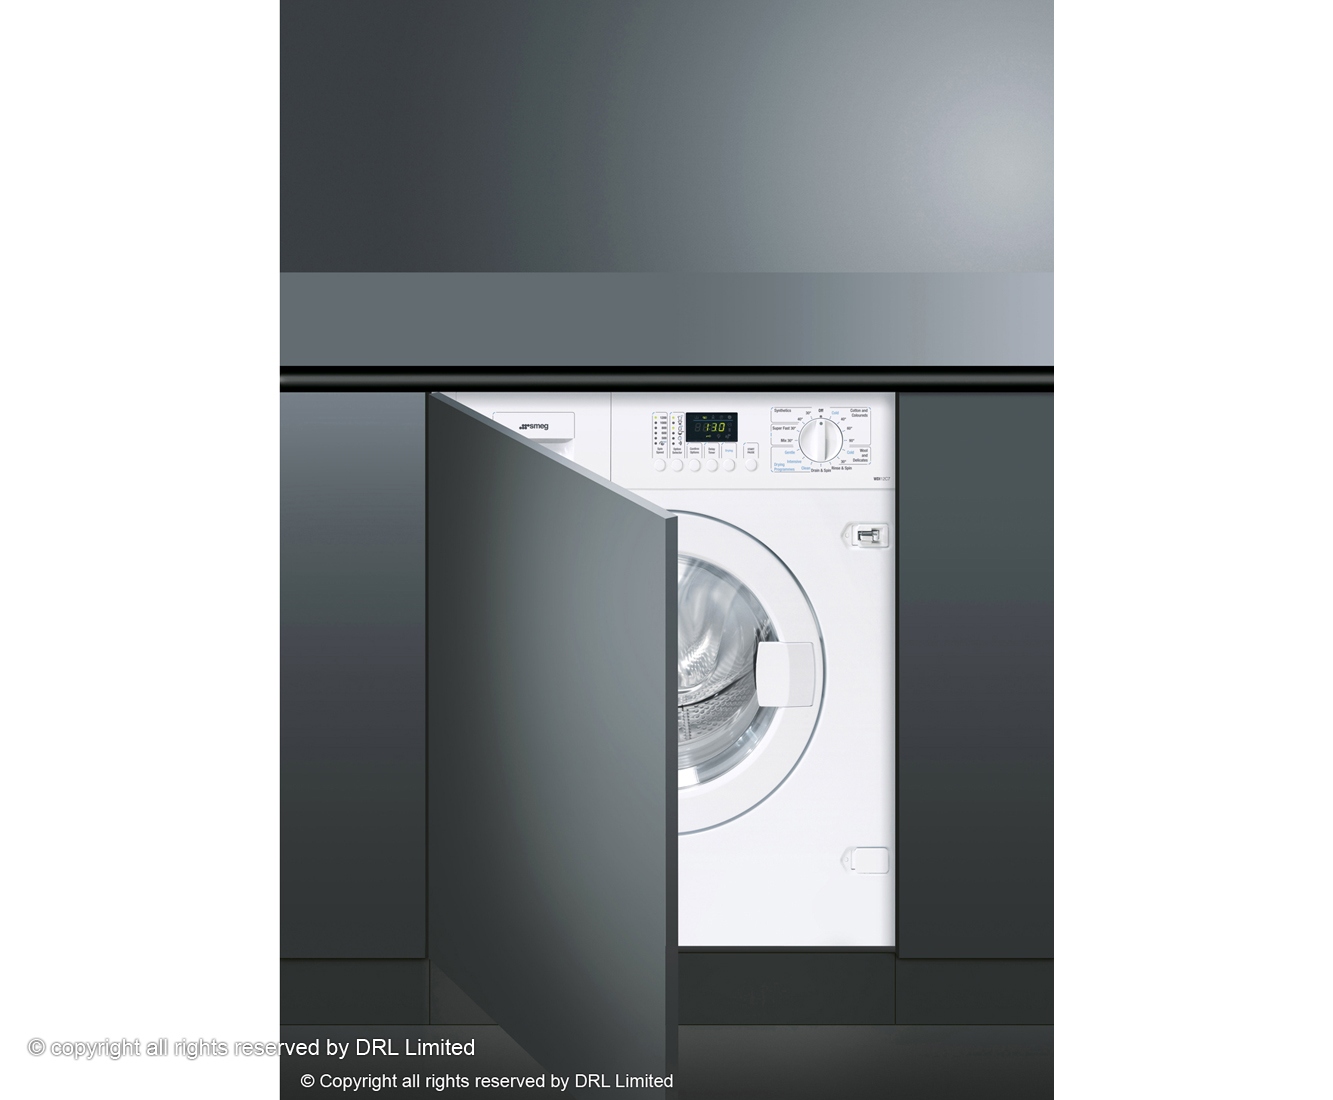 Smeg Cucina WDI12C7 Integrated 7Kg / 4Kg Washer Dryer with 1200 rpm